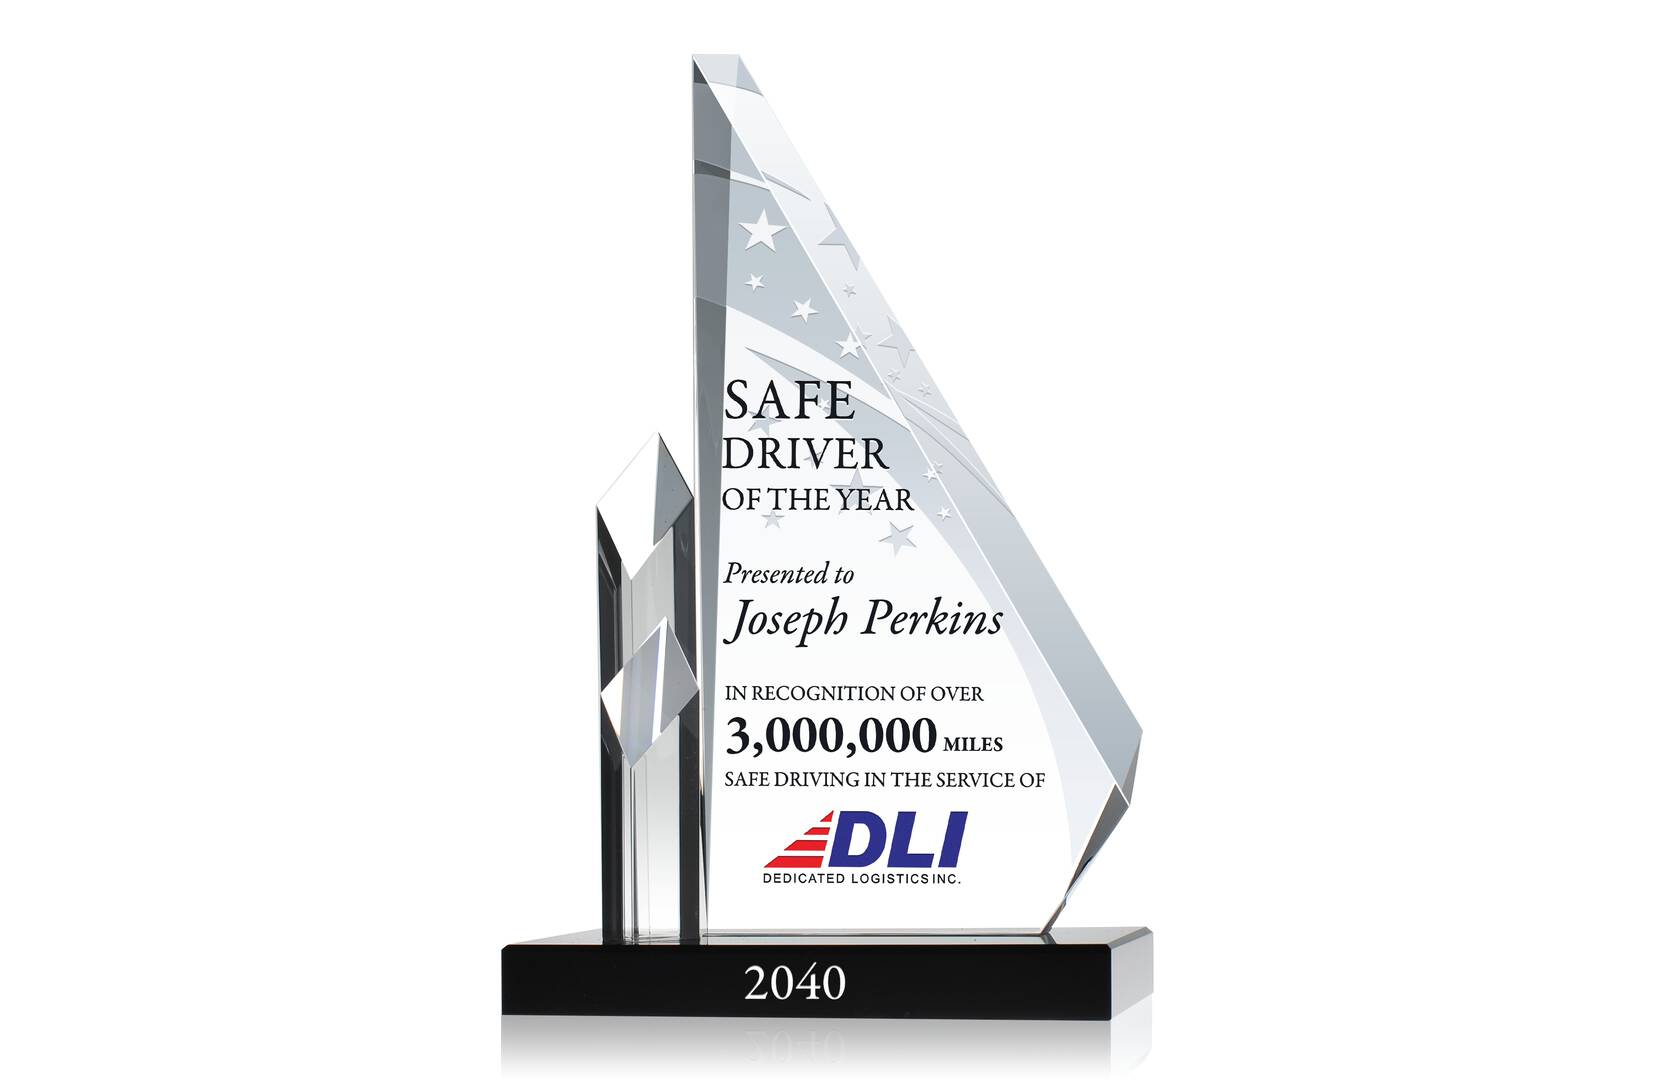 Diamond Safety Excellence Award